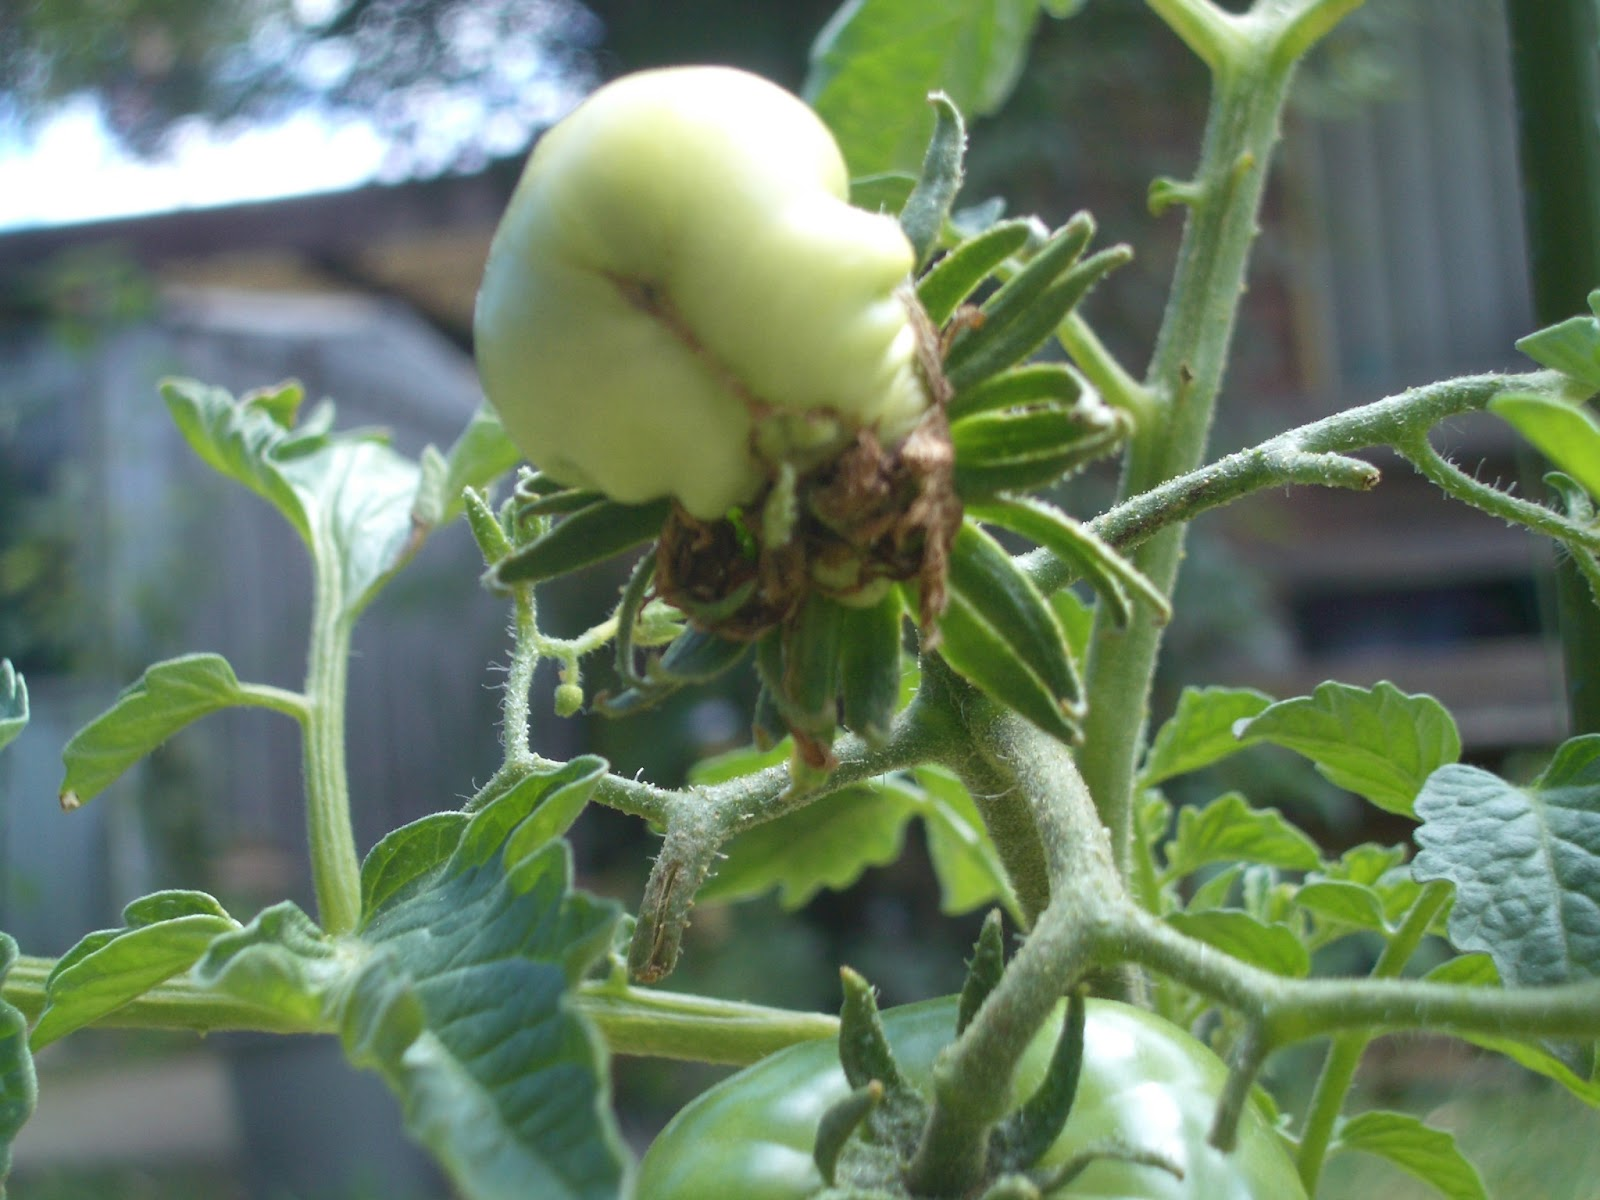 VK3UKF: 2nd deformed tomato flower grows fruit. Tomato Plant Flower To Fruit